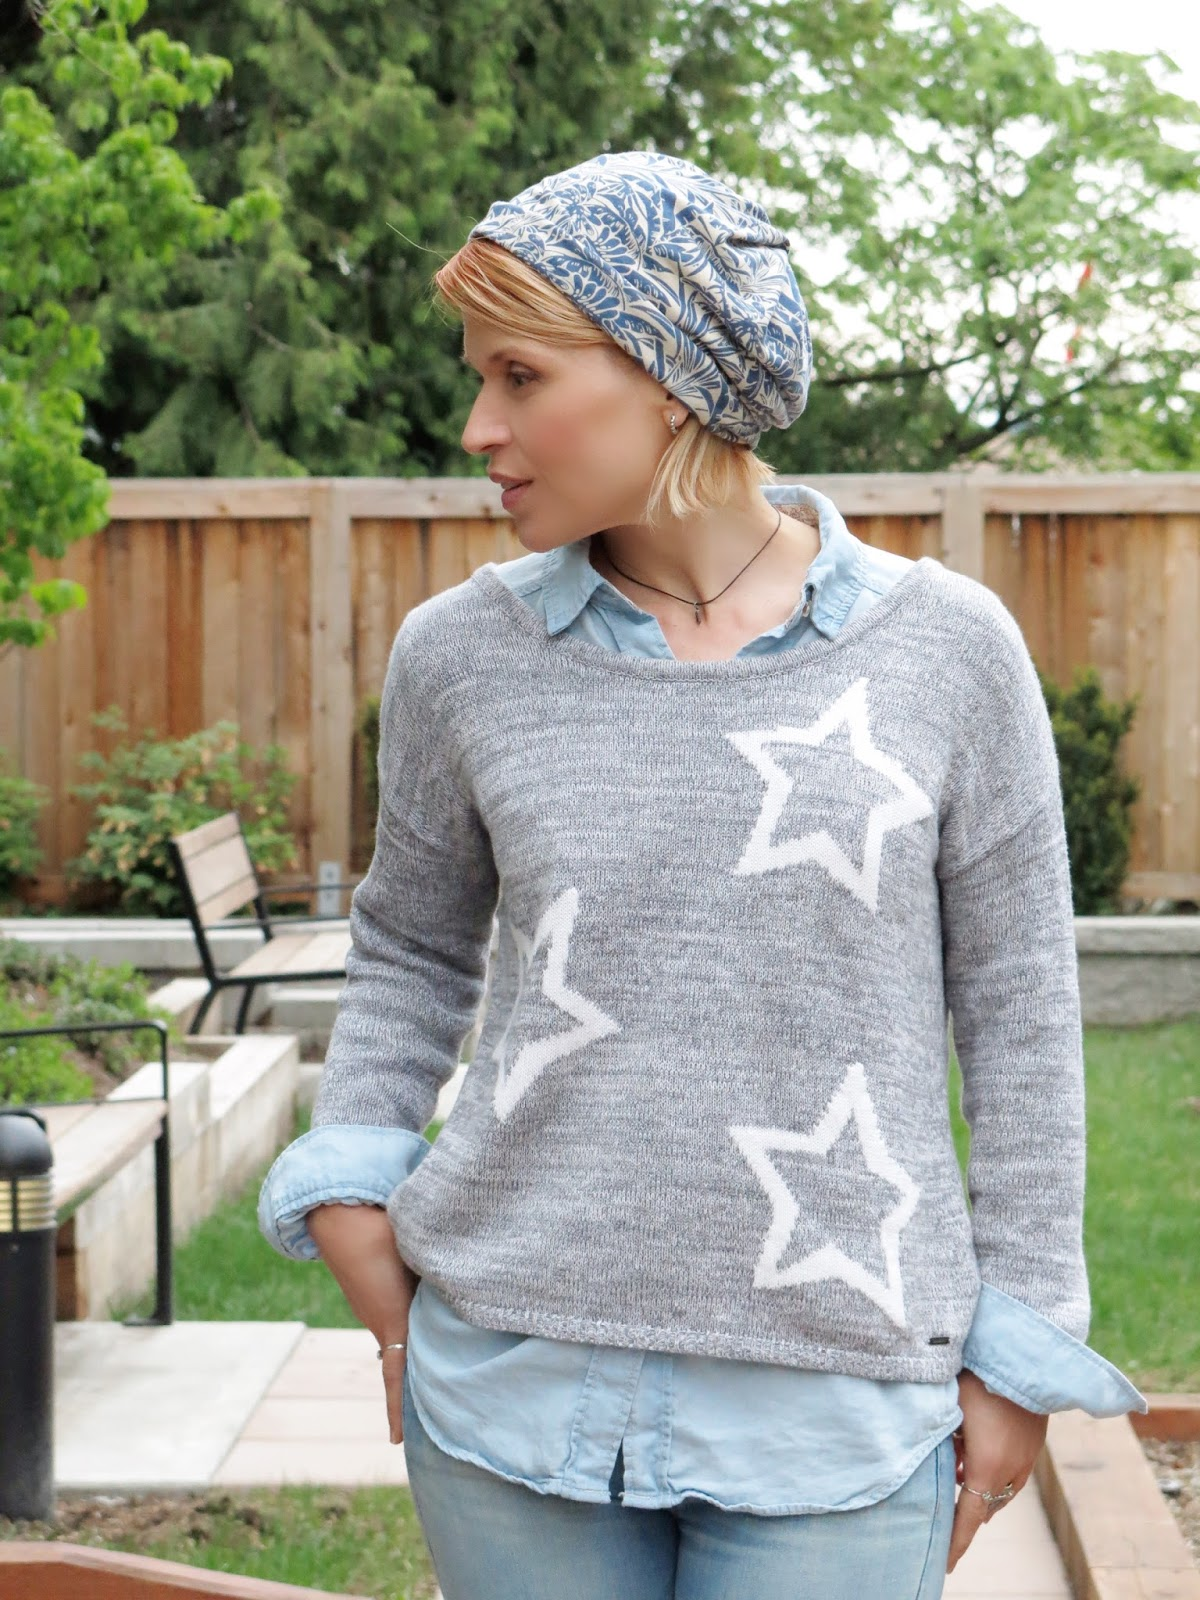 chambray shirt layered under a star-patterned sweater, and a floral jersey beanie